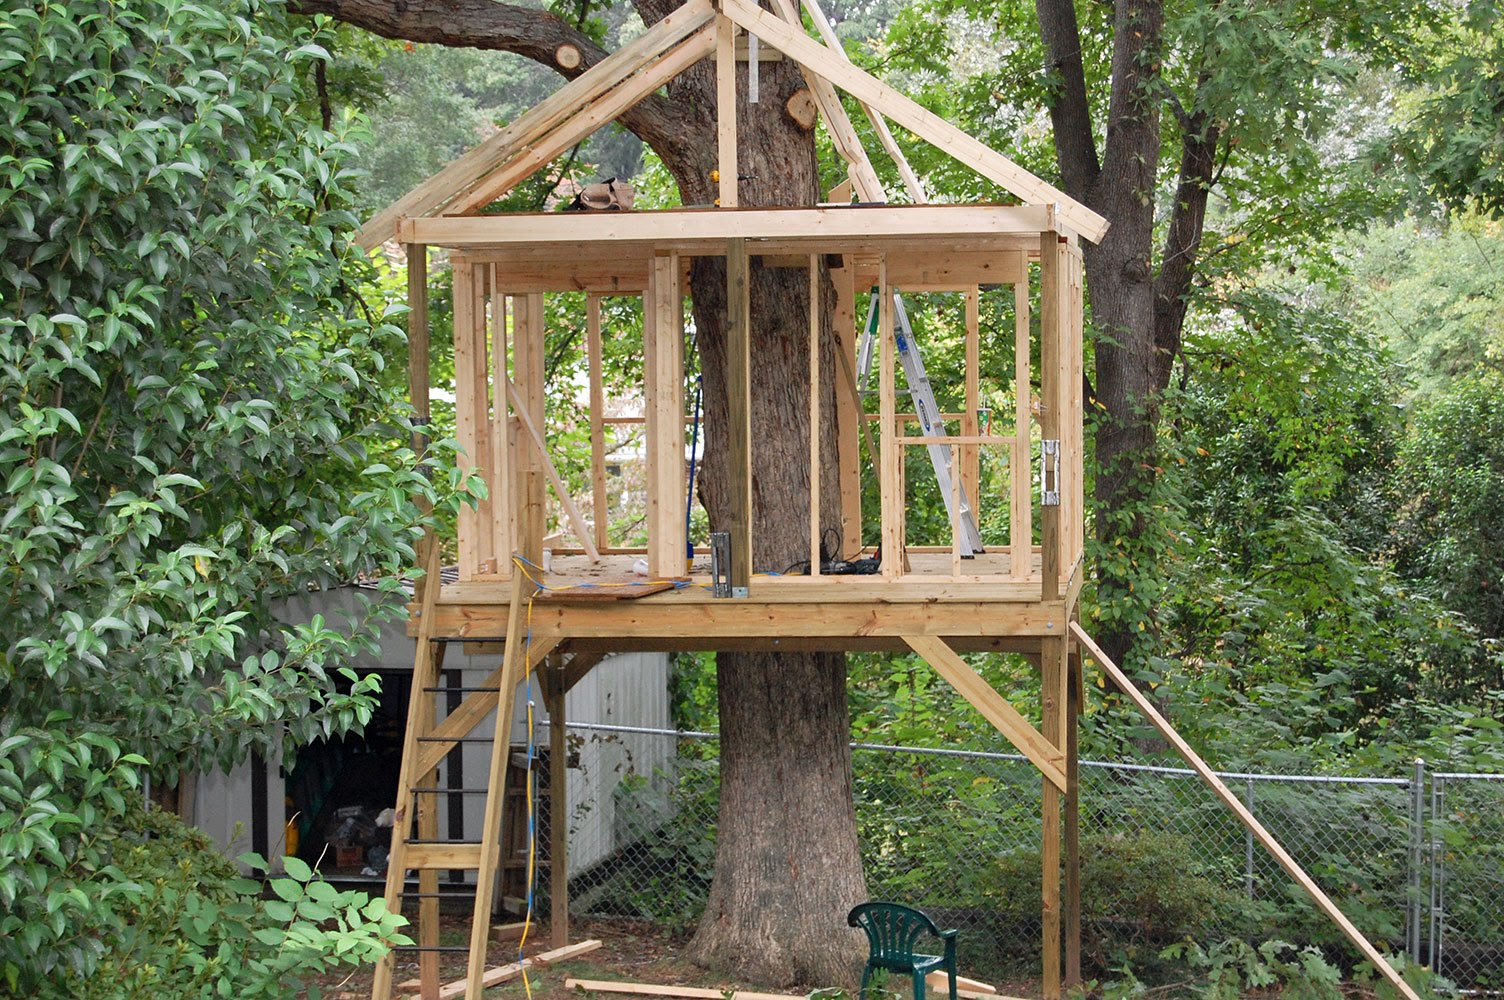 DSC_0069 Easy Basic Two Tree Treehouse Designs on livable tree house designs, build tree house plans designs, camo house interior designs, 2 story tree house designs, rustic porch designs, two zip line seat, one story luxury house designs, building treehouses designs, log house designs, two trees flooring, triangular house designs, cheap tree house designs, simple tree house designs, bamboo tree house designs, custom tree house designs,